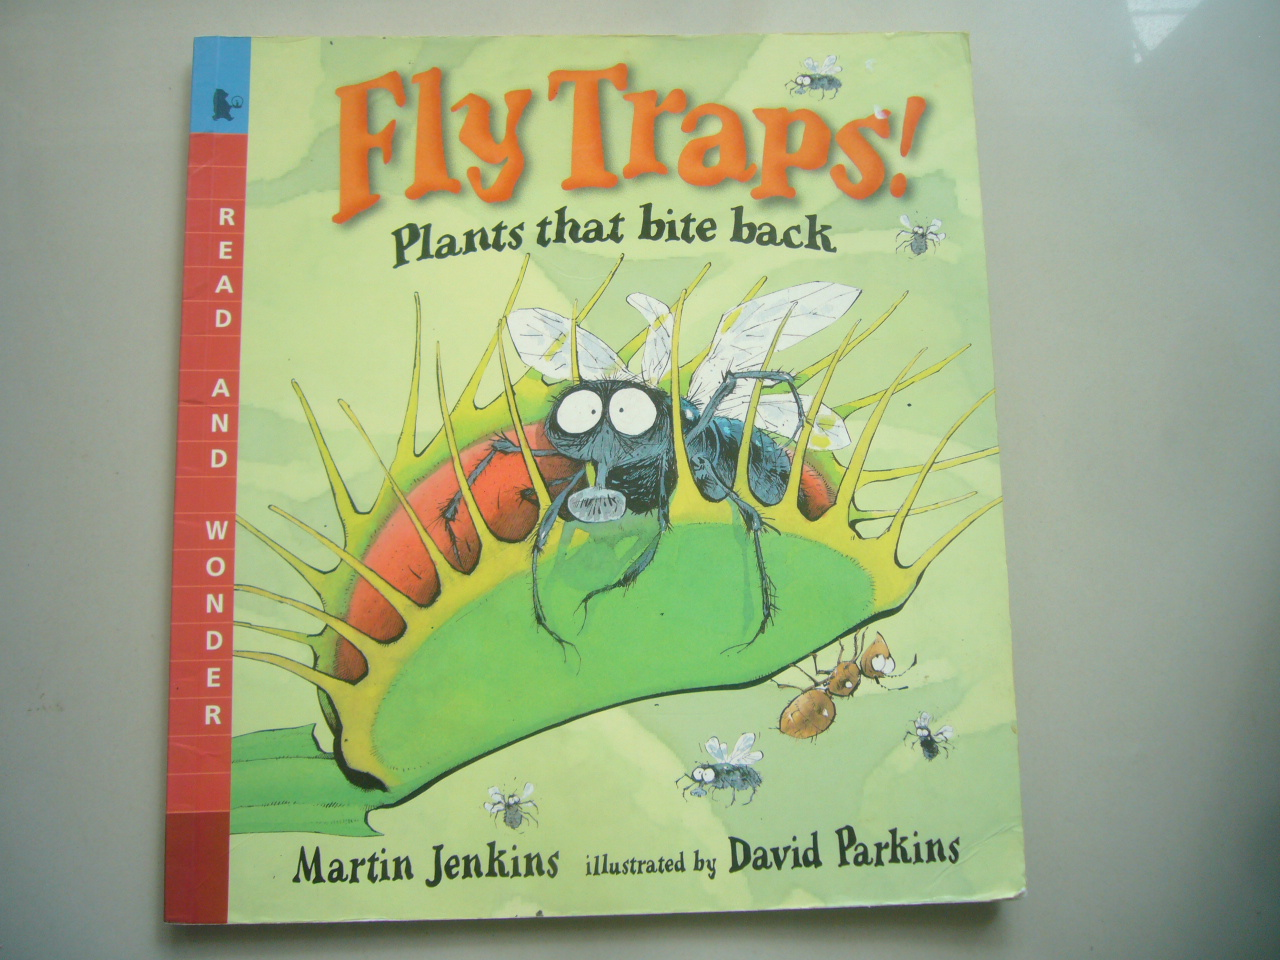 Fly Traps! Plant That Bite Back